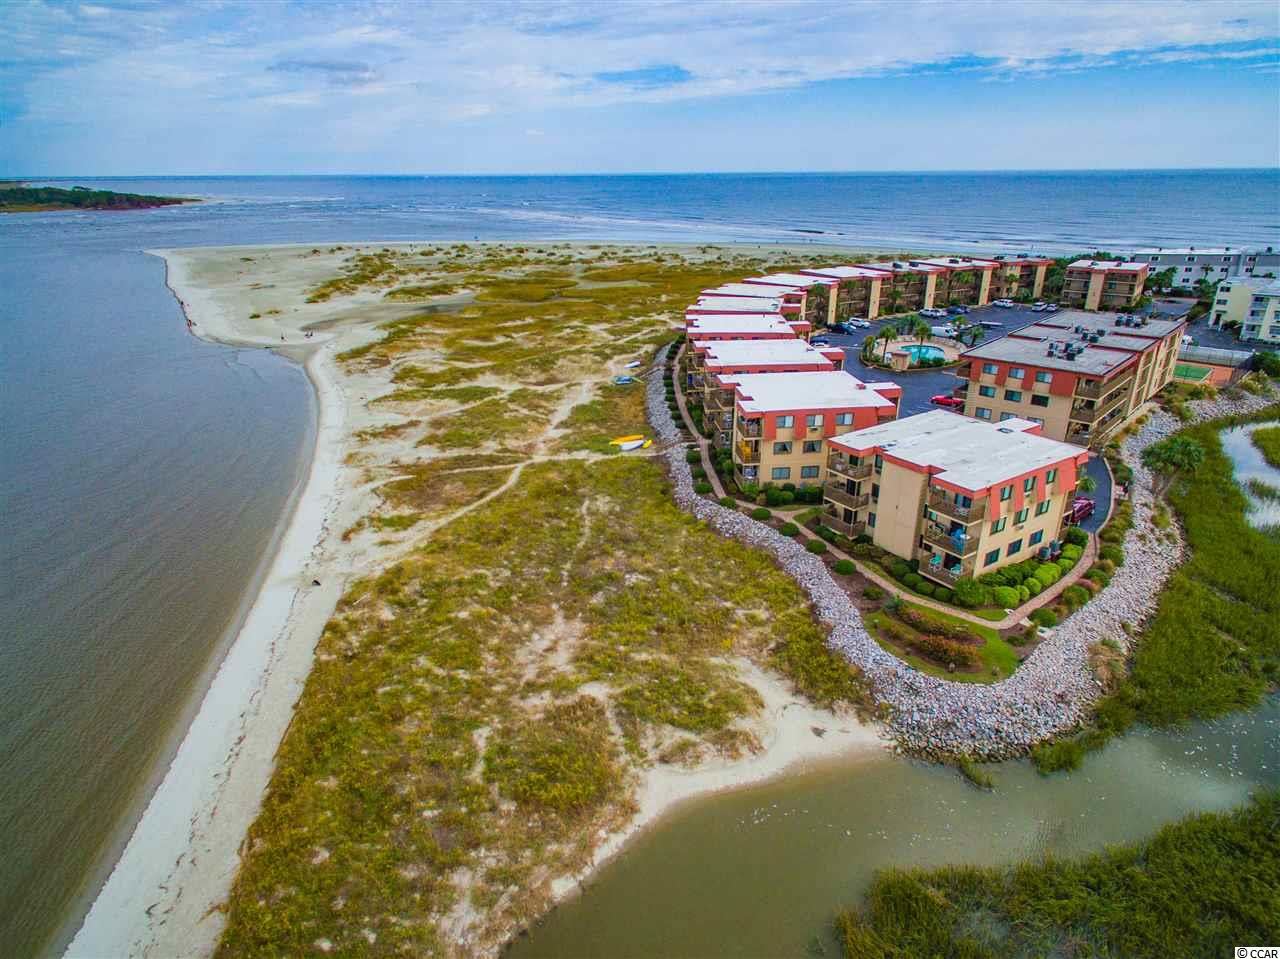 Contact your real estate agent to view this  Inlet Point Villas - Cherry Grov condo for sale